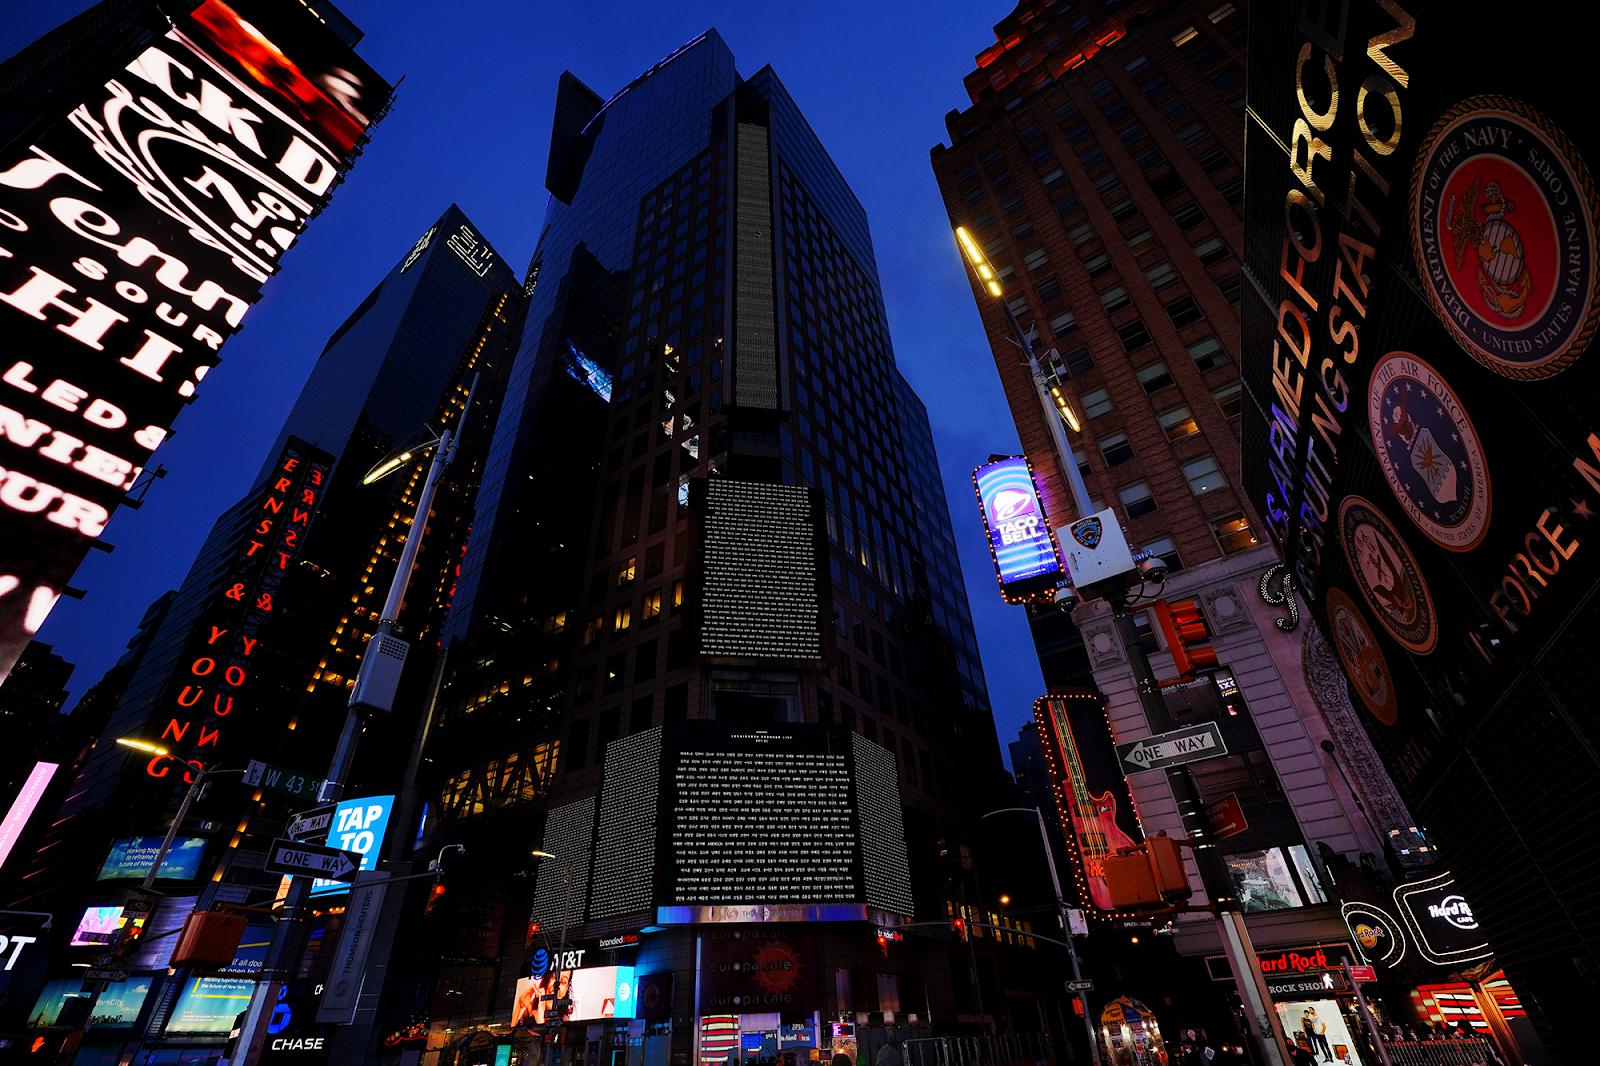 The Names of Many Koreans lit up New York Times Square